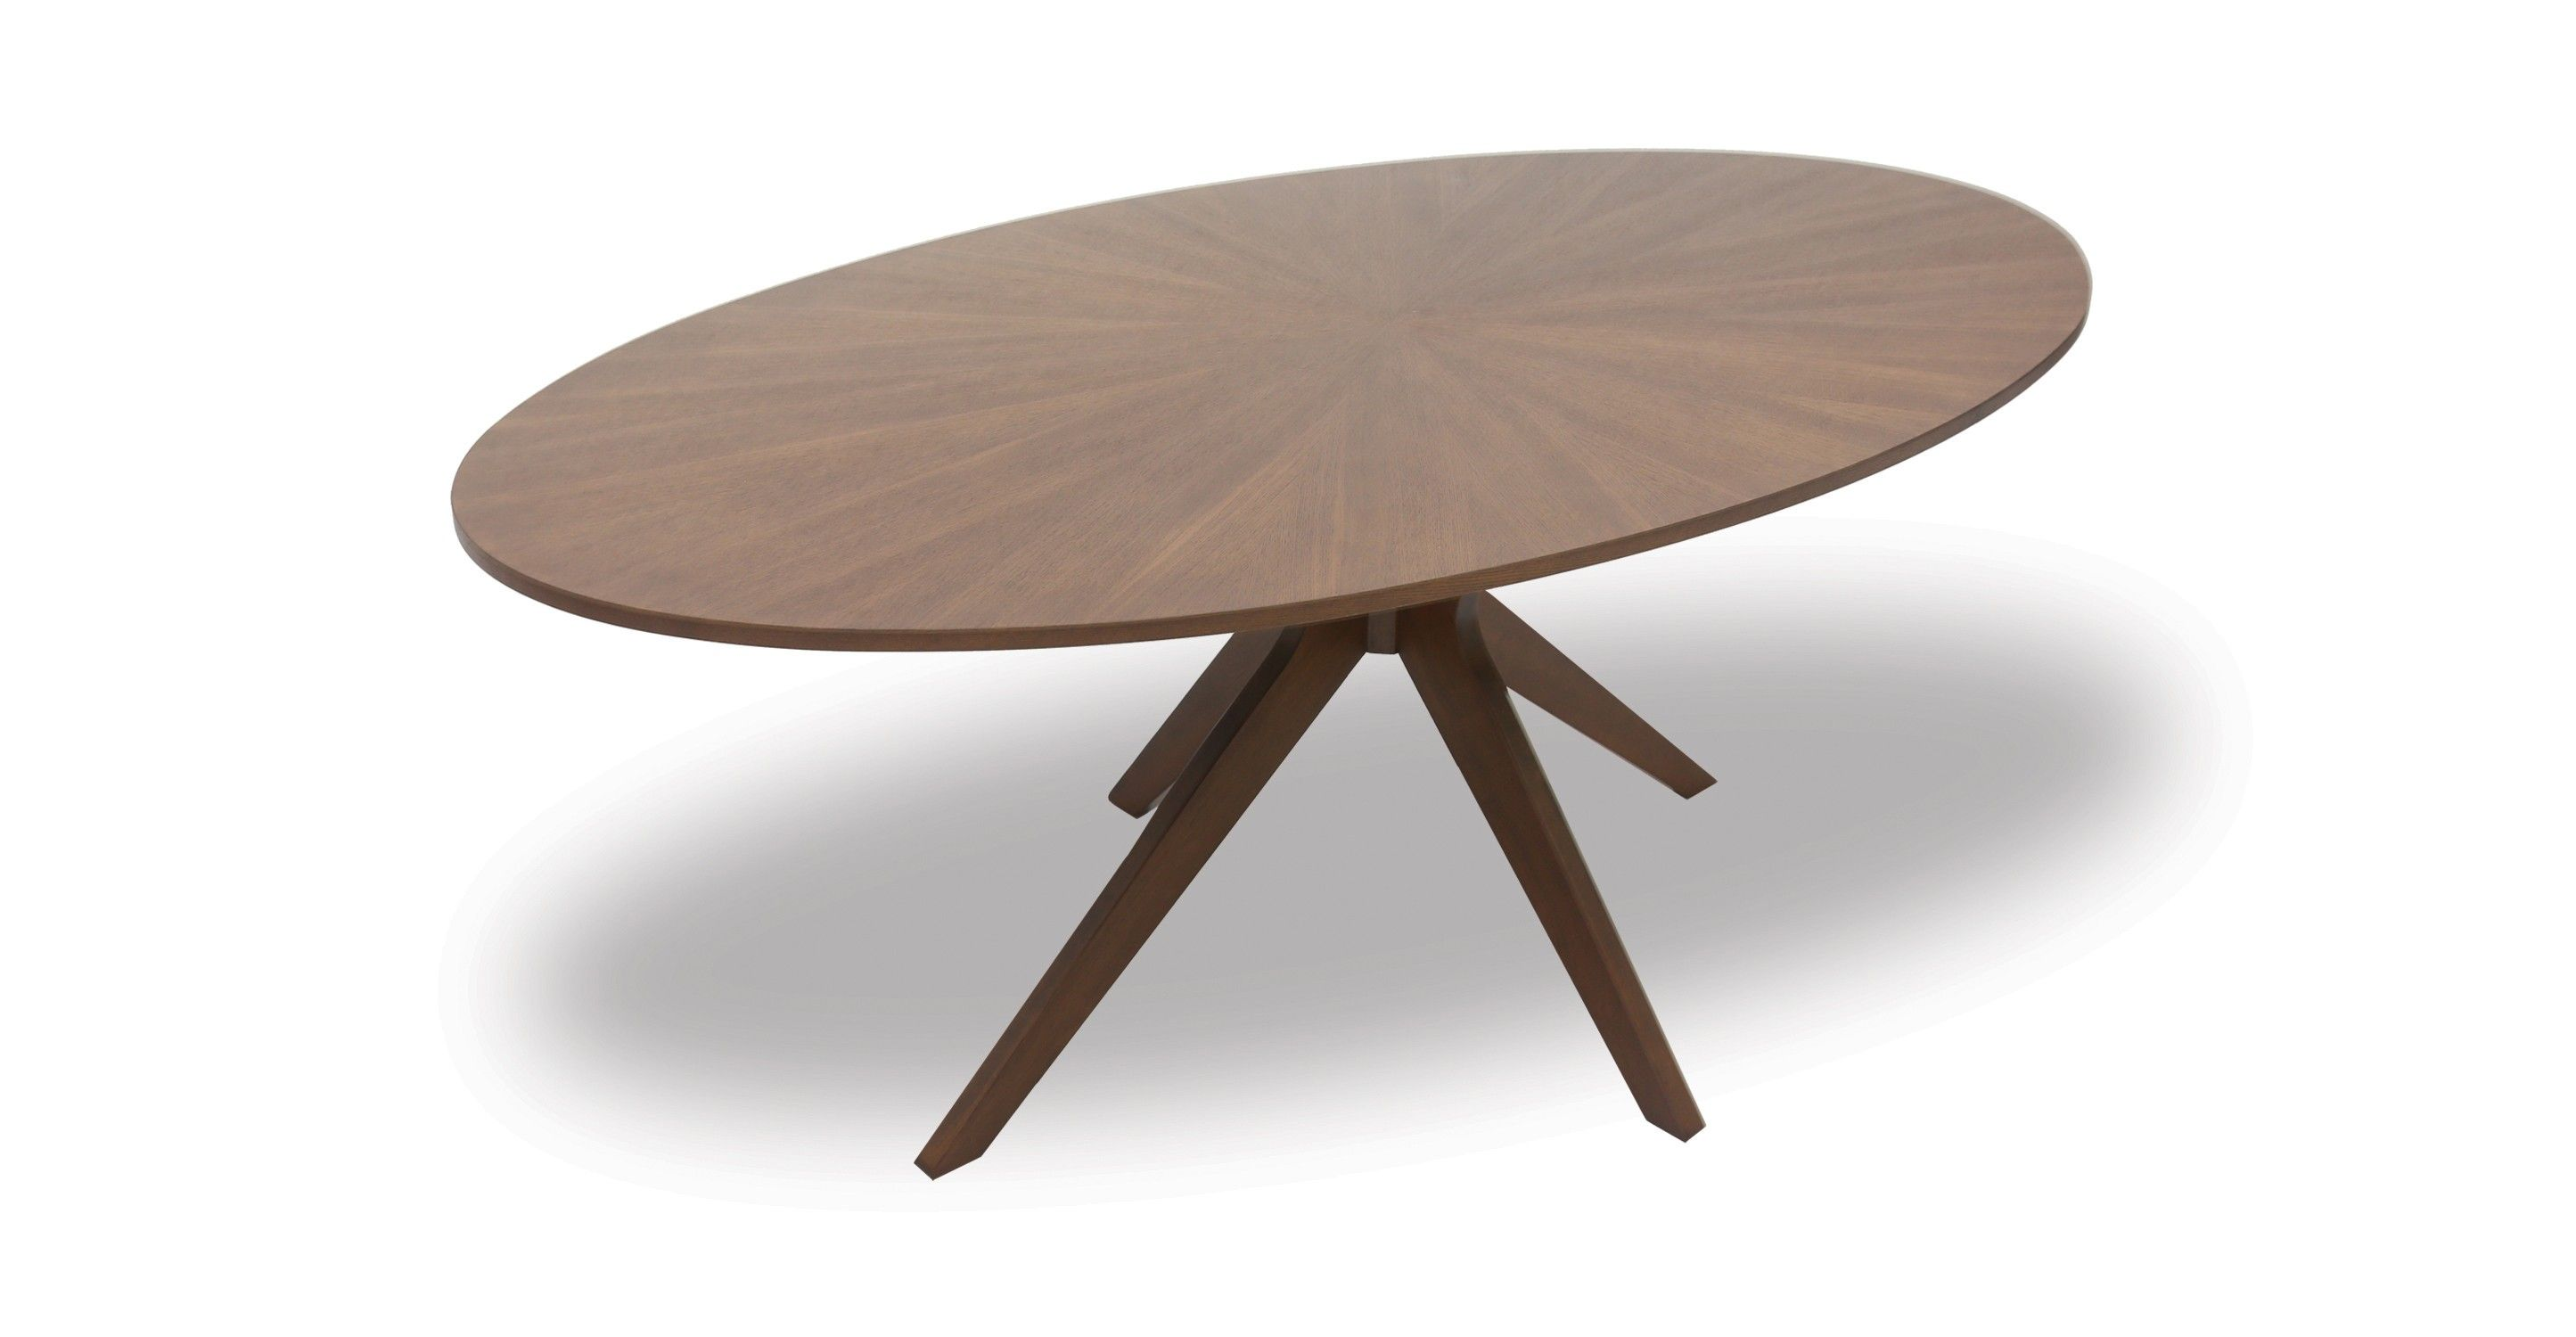 Conan Oval Dining Table Inspiration For Our Home